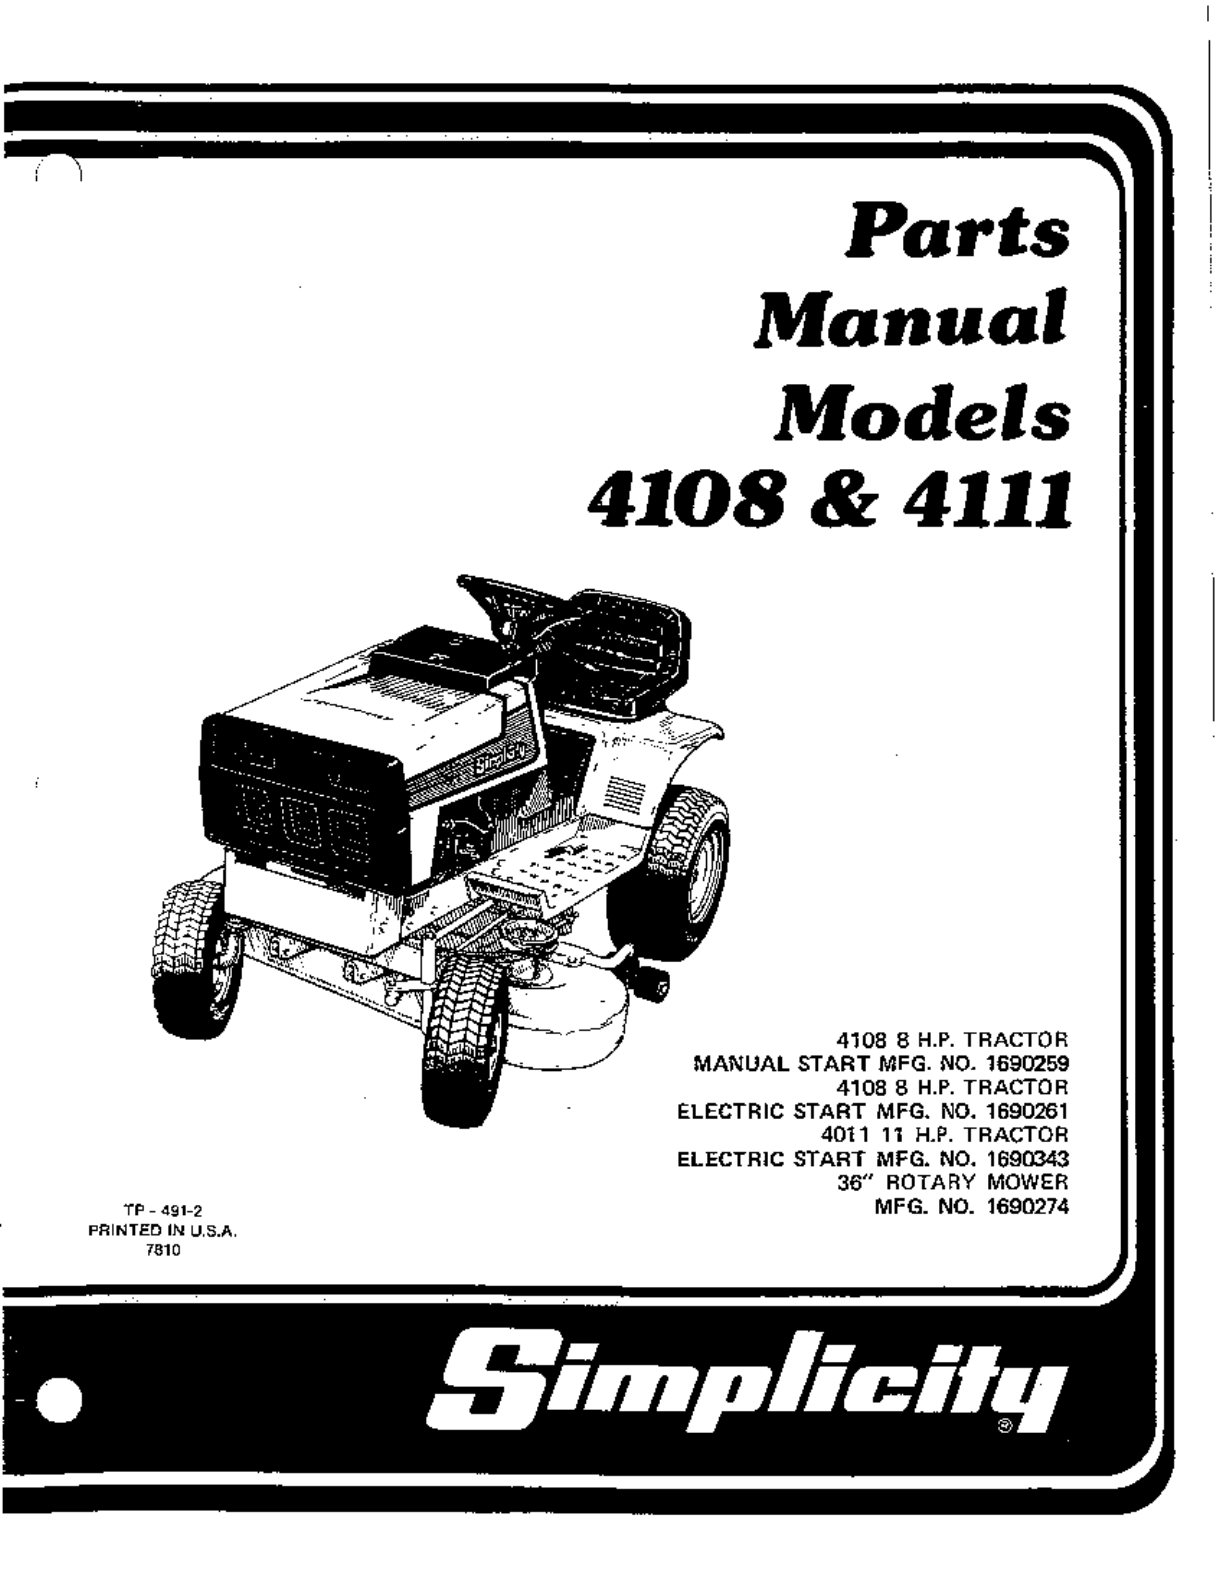 Simplicity Lawn Mower User Guide